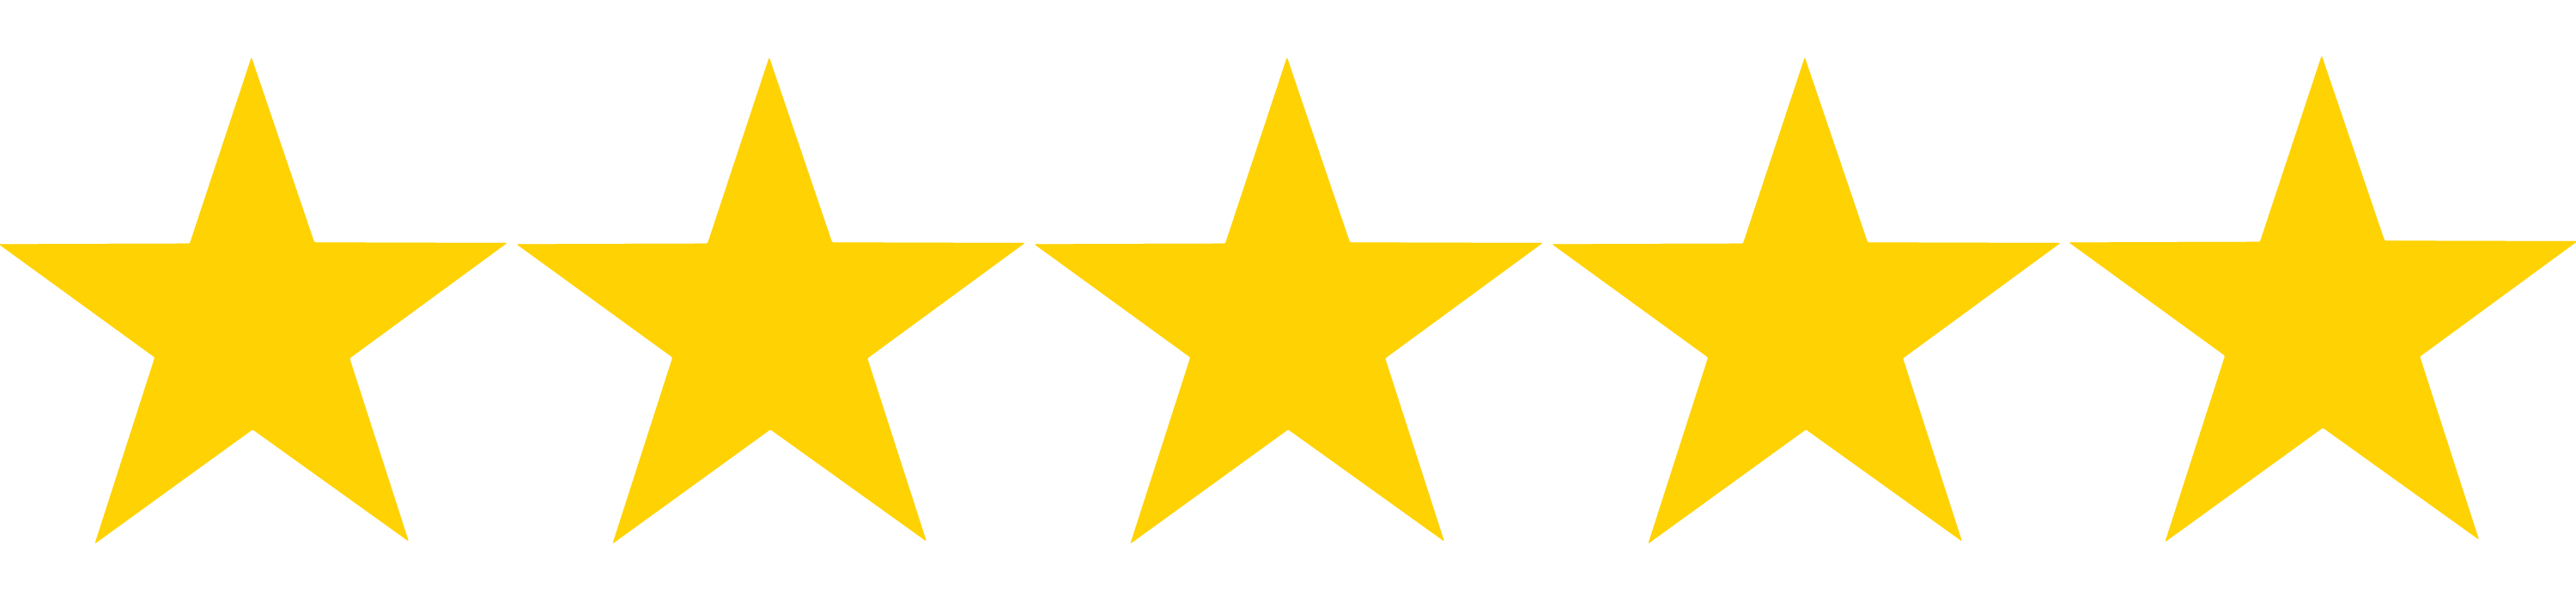 5 star review png - Clip Art Library (3000 x 700 Pixel)